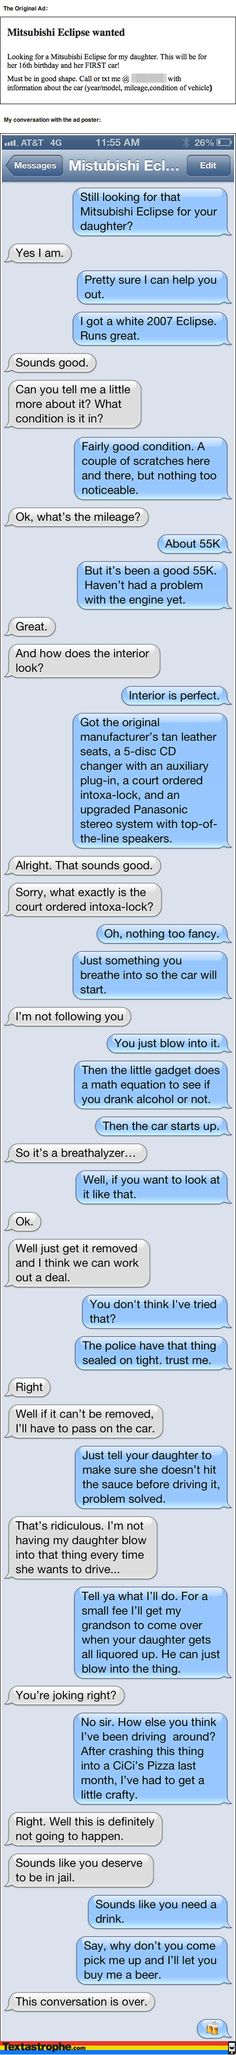 Because messing with your friends and foes has never been easier than with text messages -- thirty-nine epic text pranks for April Fools'! 9gag Funny, Funny Fails, Text Pranks, Prank Texts, Lol Text, April Fools Pranks, Epic Texts, Funny Text Messages, Funny Posts